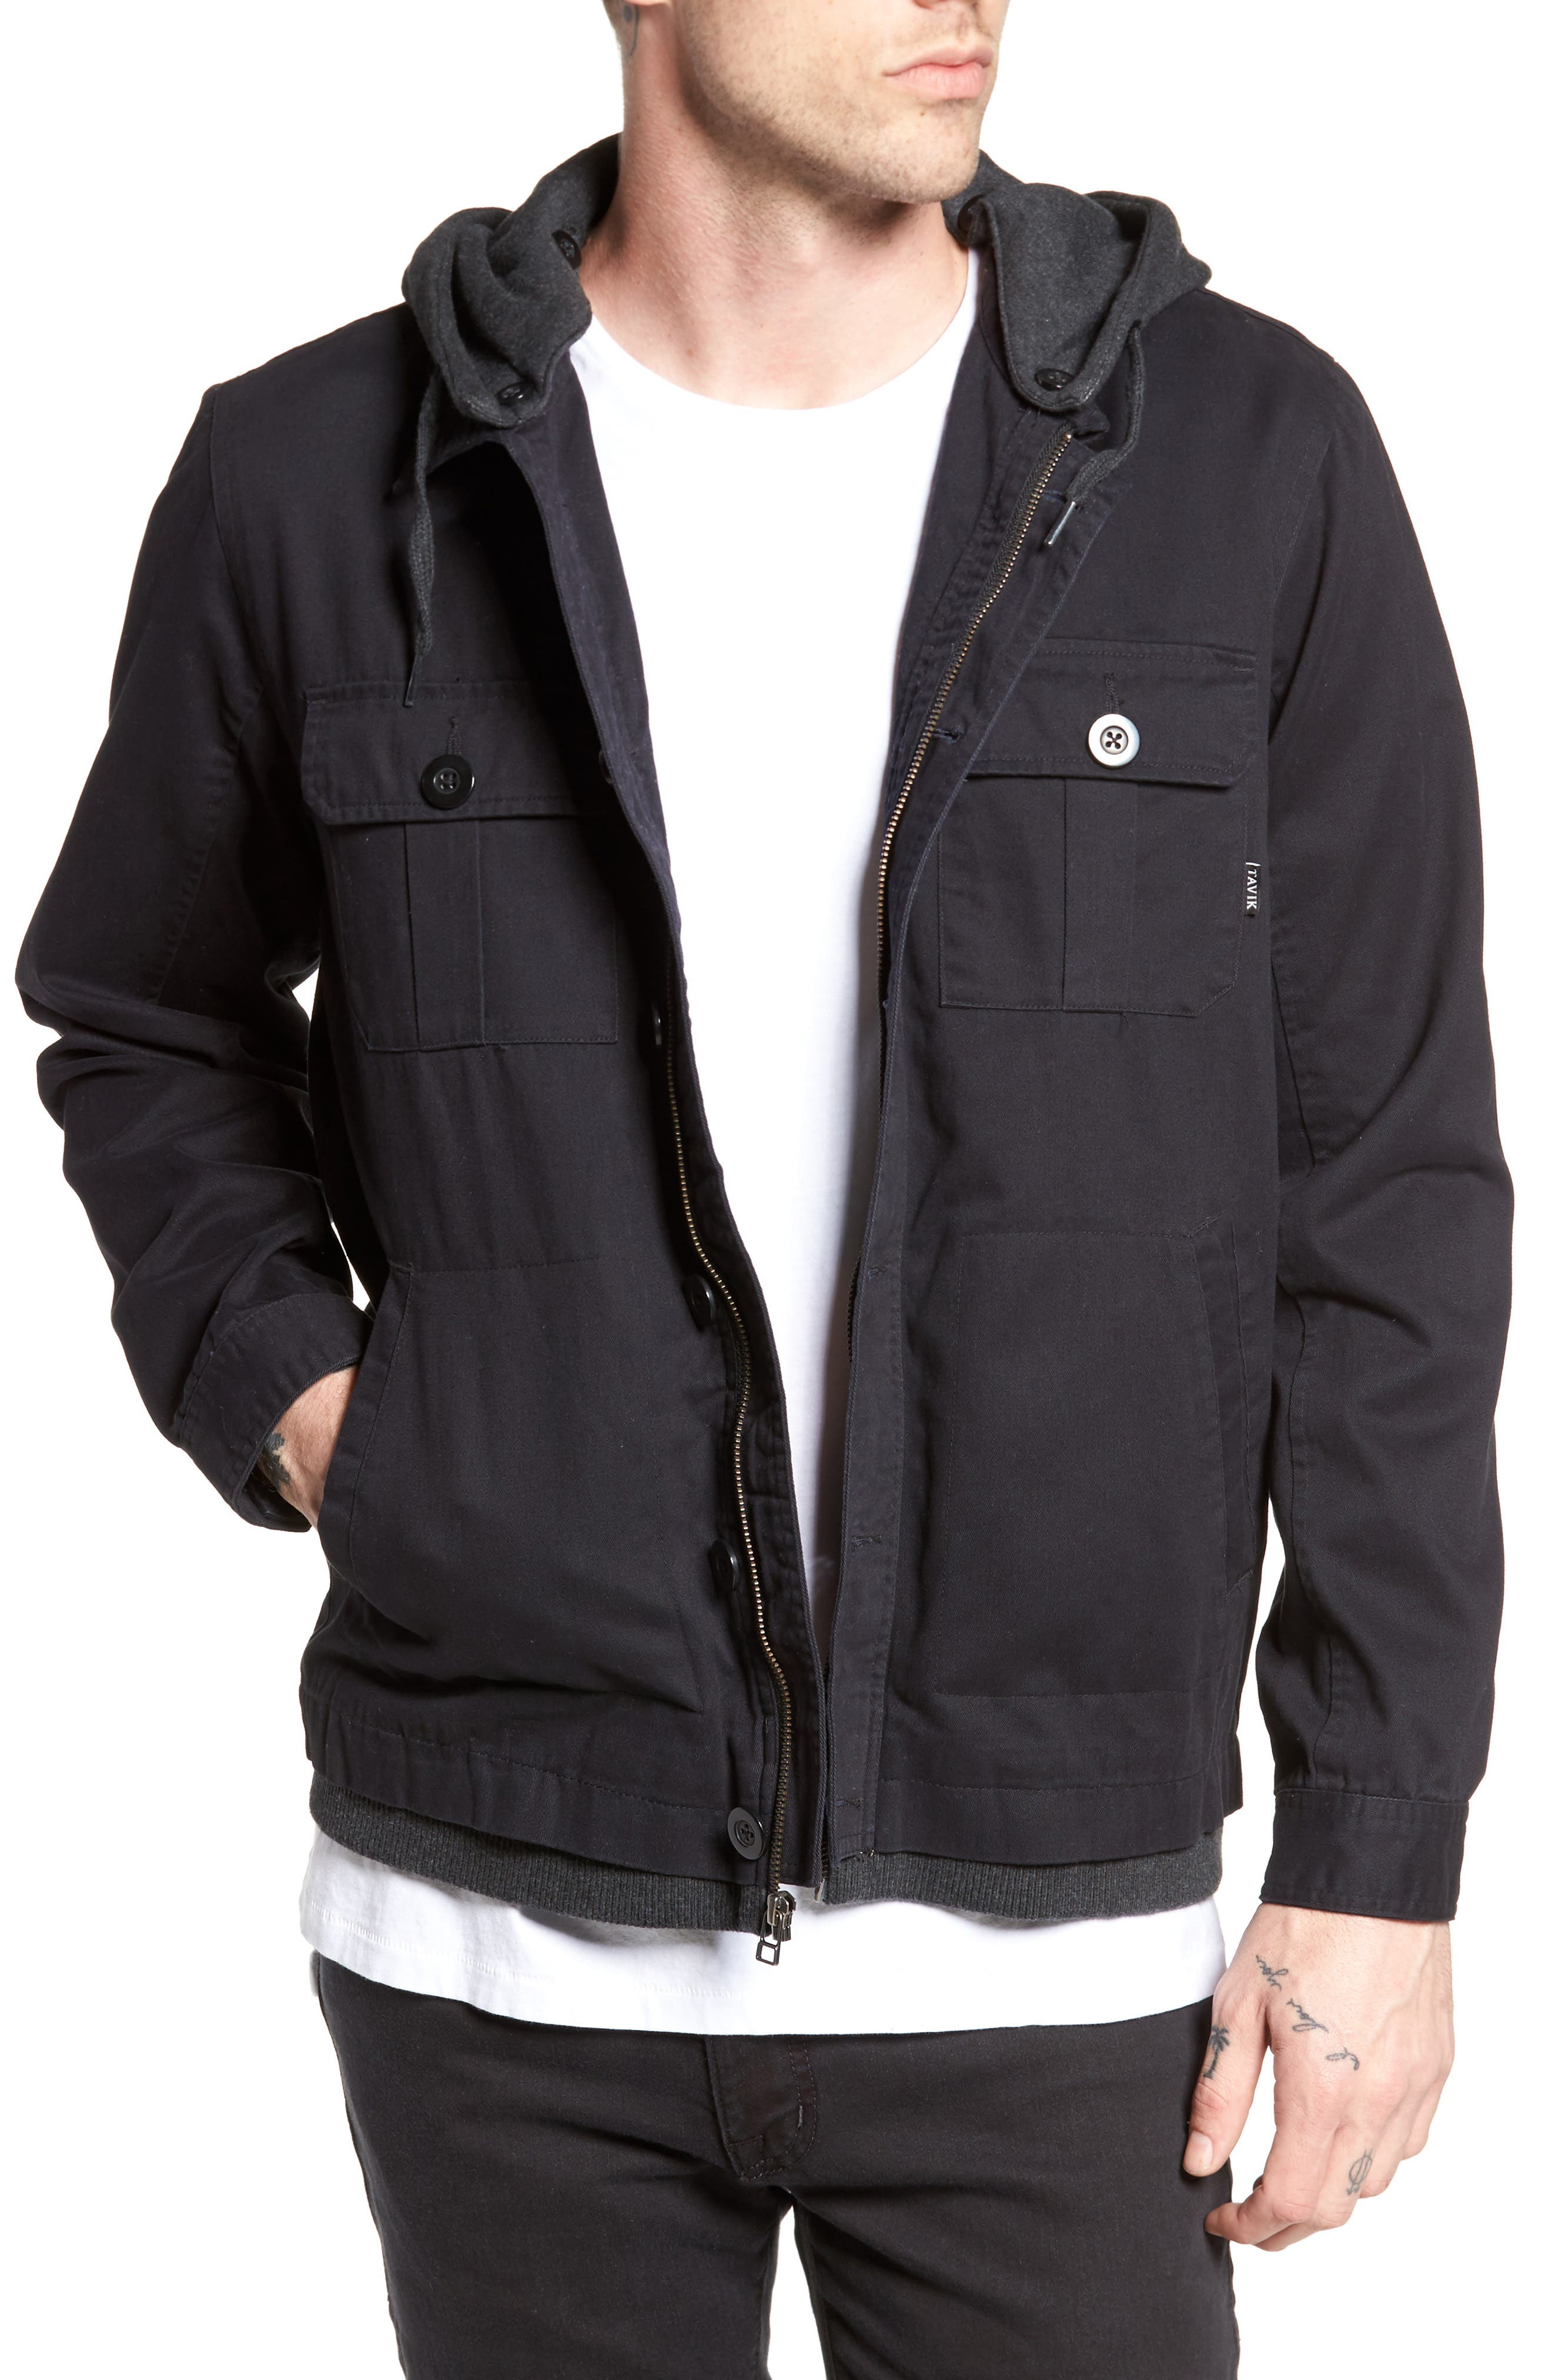 Droogs Field Jacket with Detachable Hood,                             Main thumbnail 1, color,                             Grey/ Heather Grey